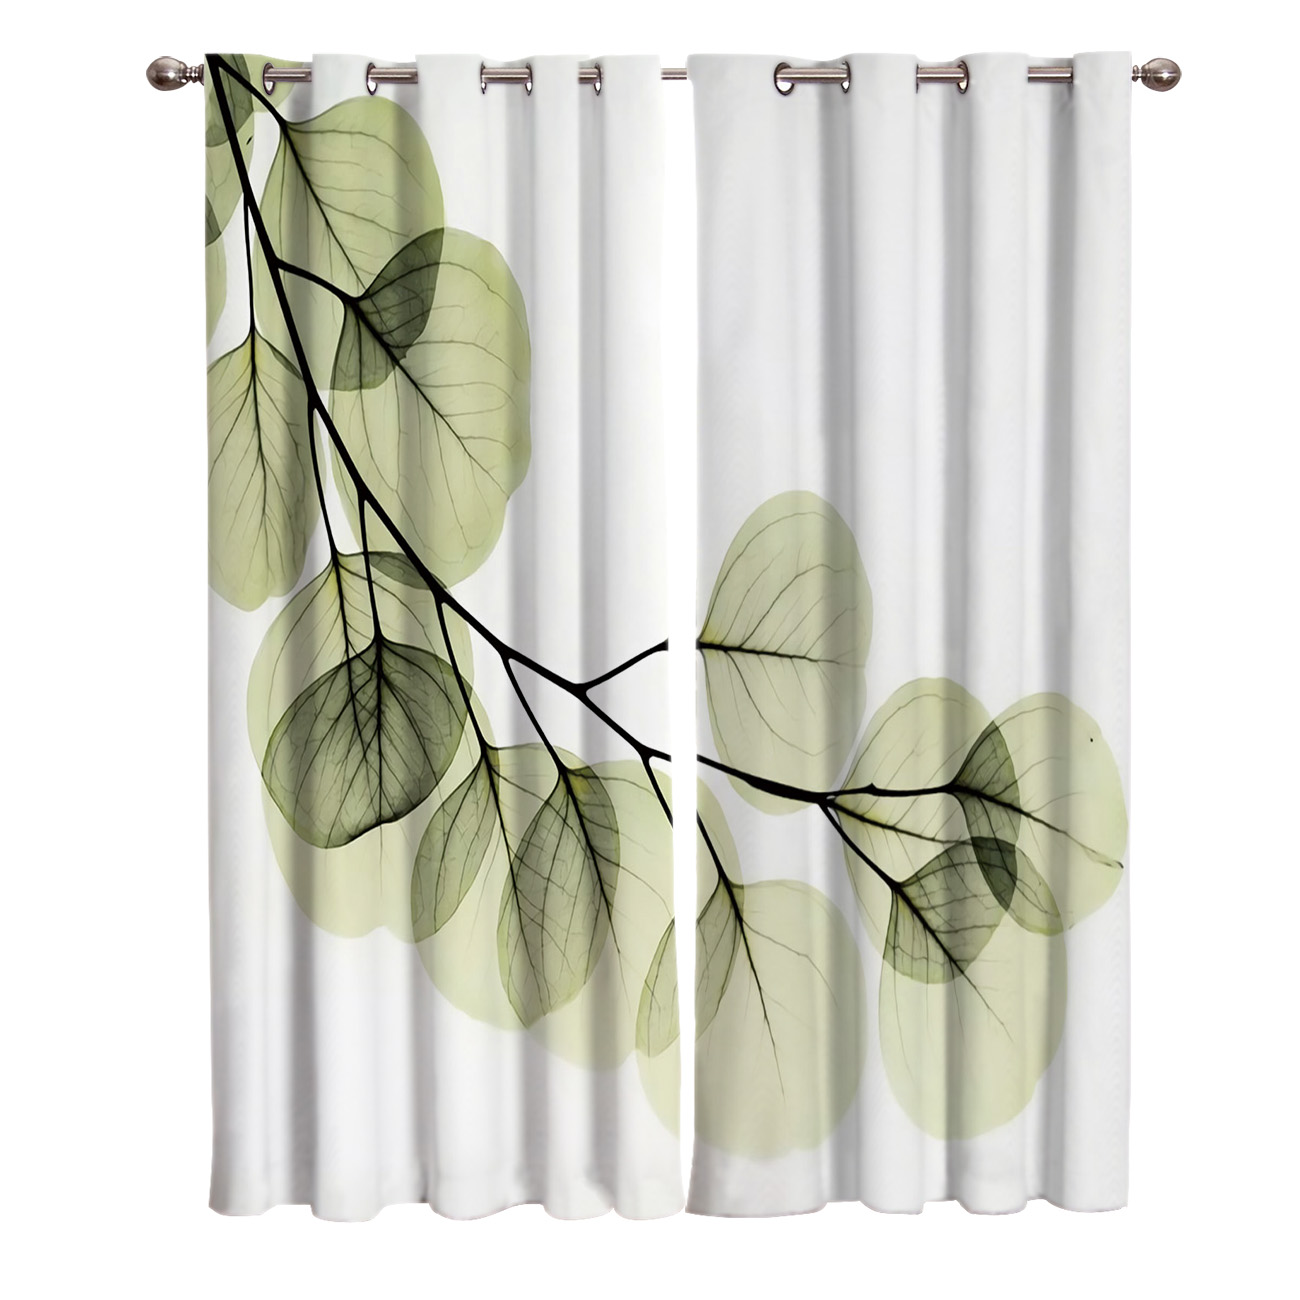 Window Treatments Curtains Valance